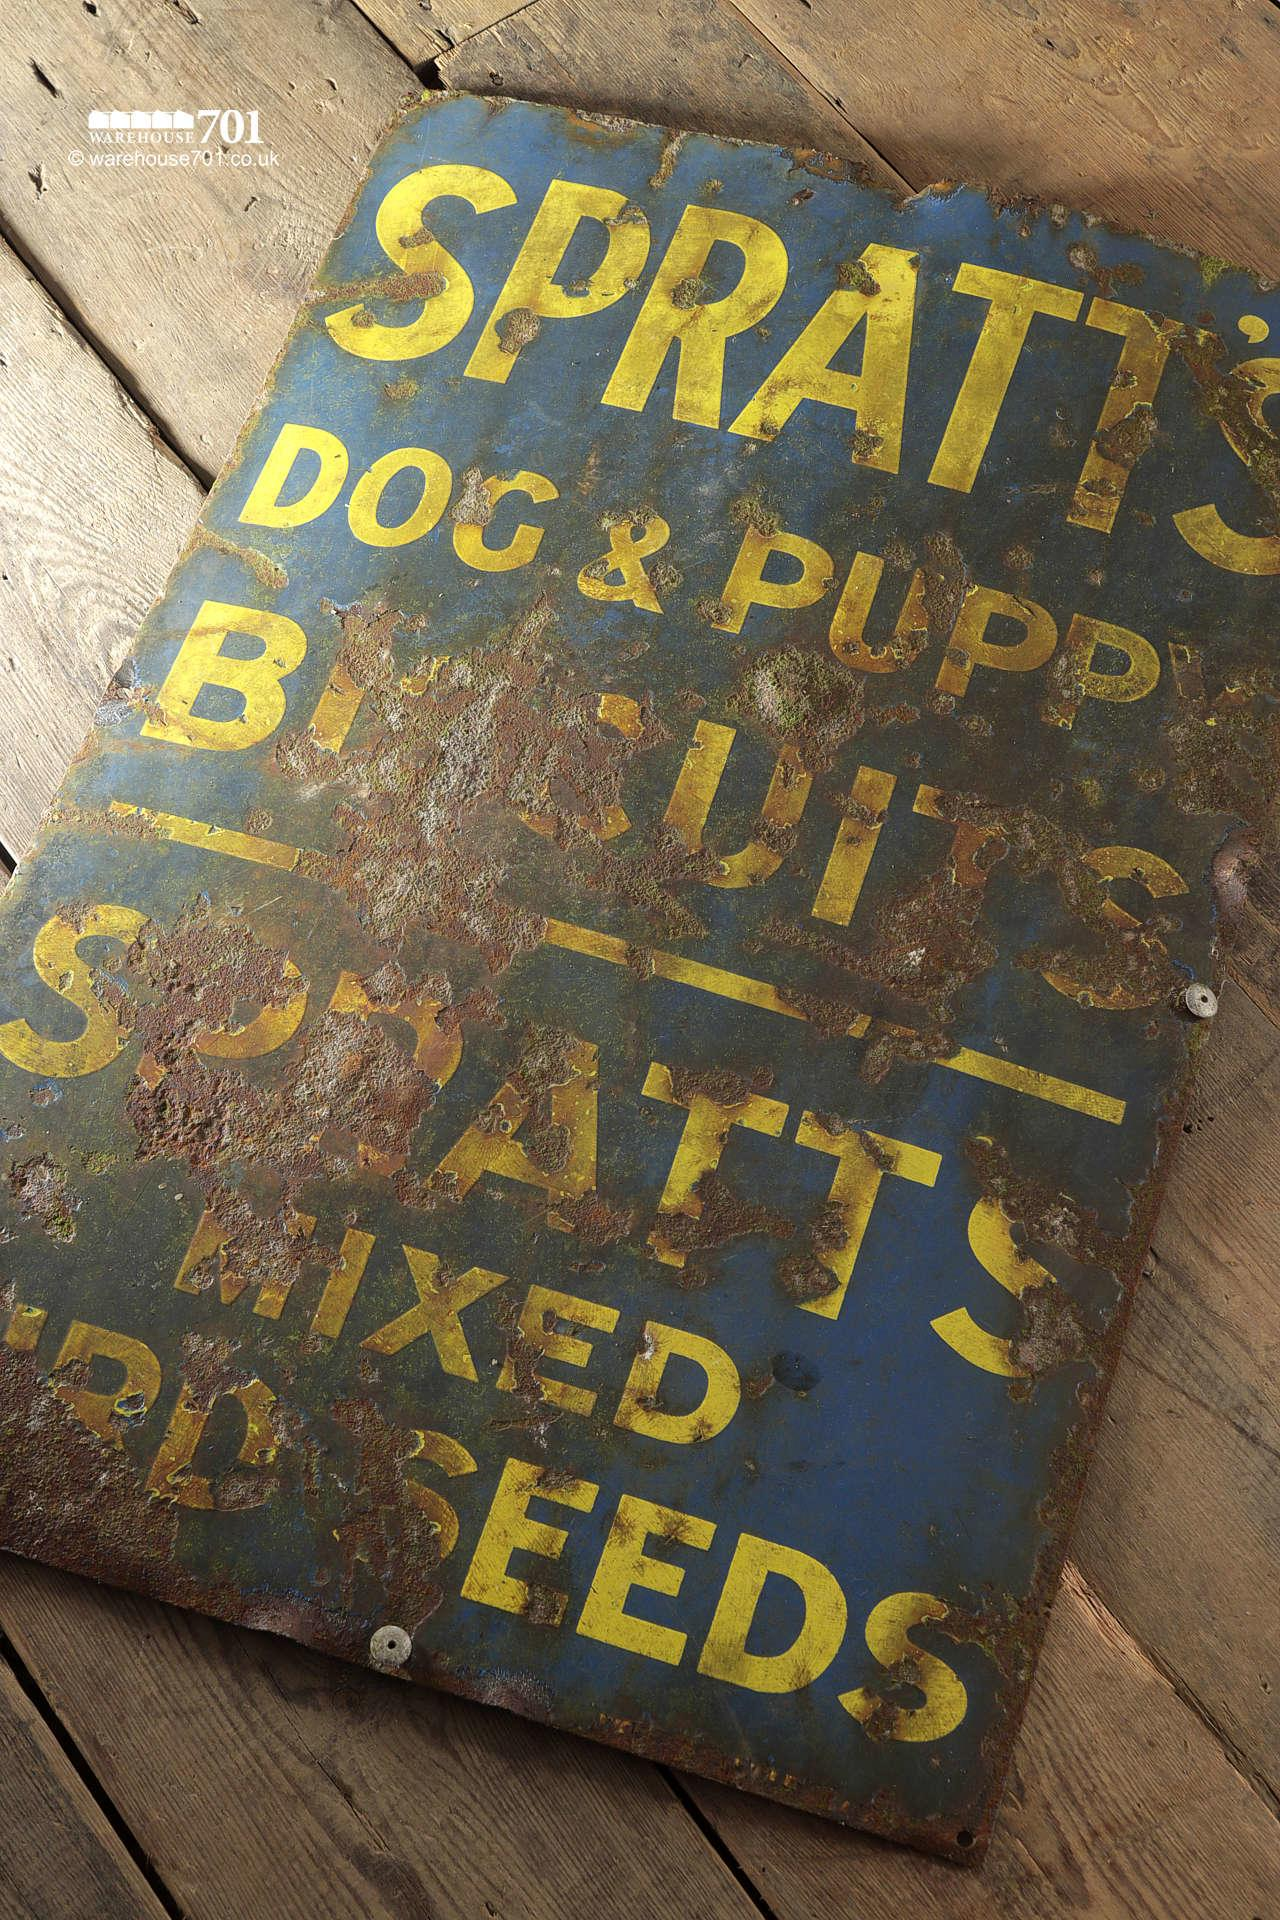 Salvaged Metal Spratts Dog and Puppy Enamel Sign